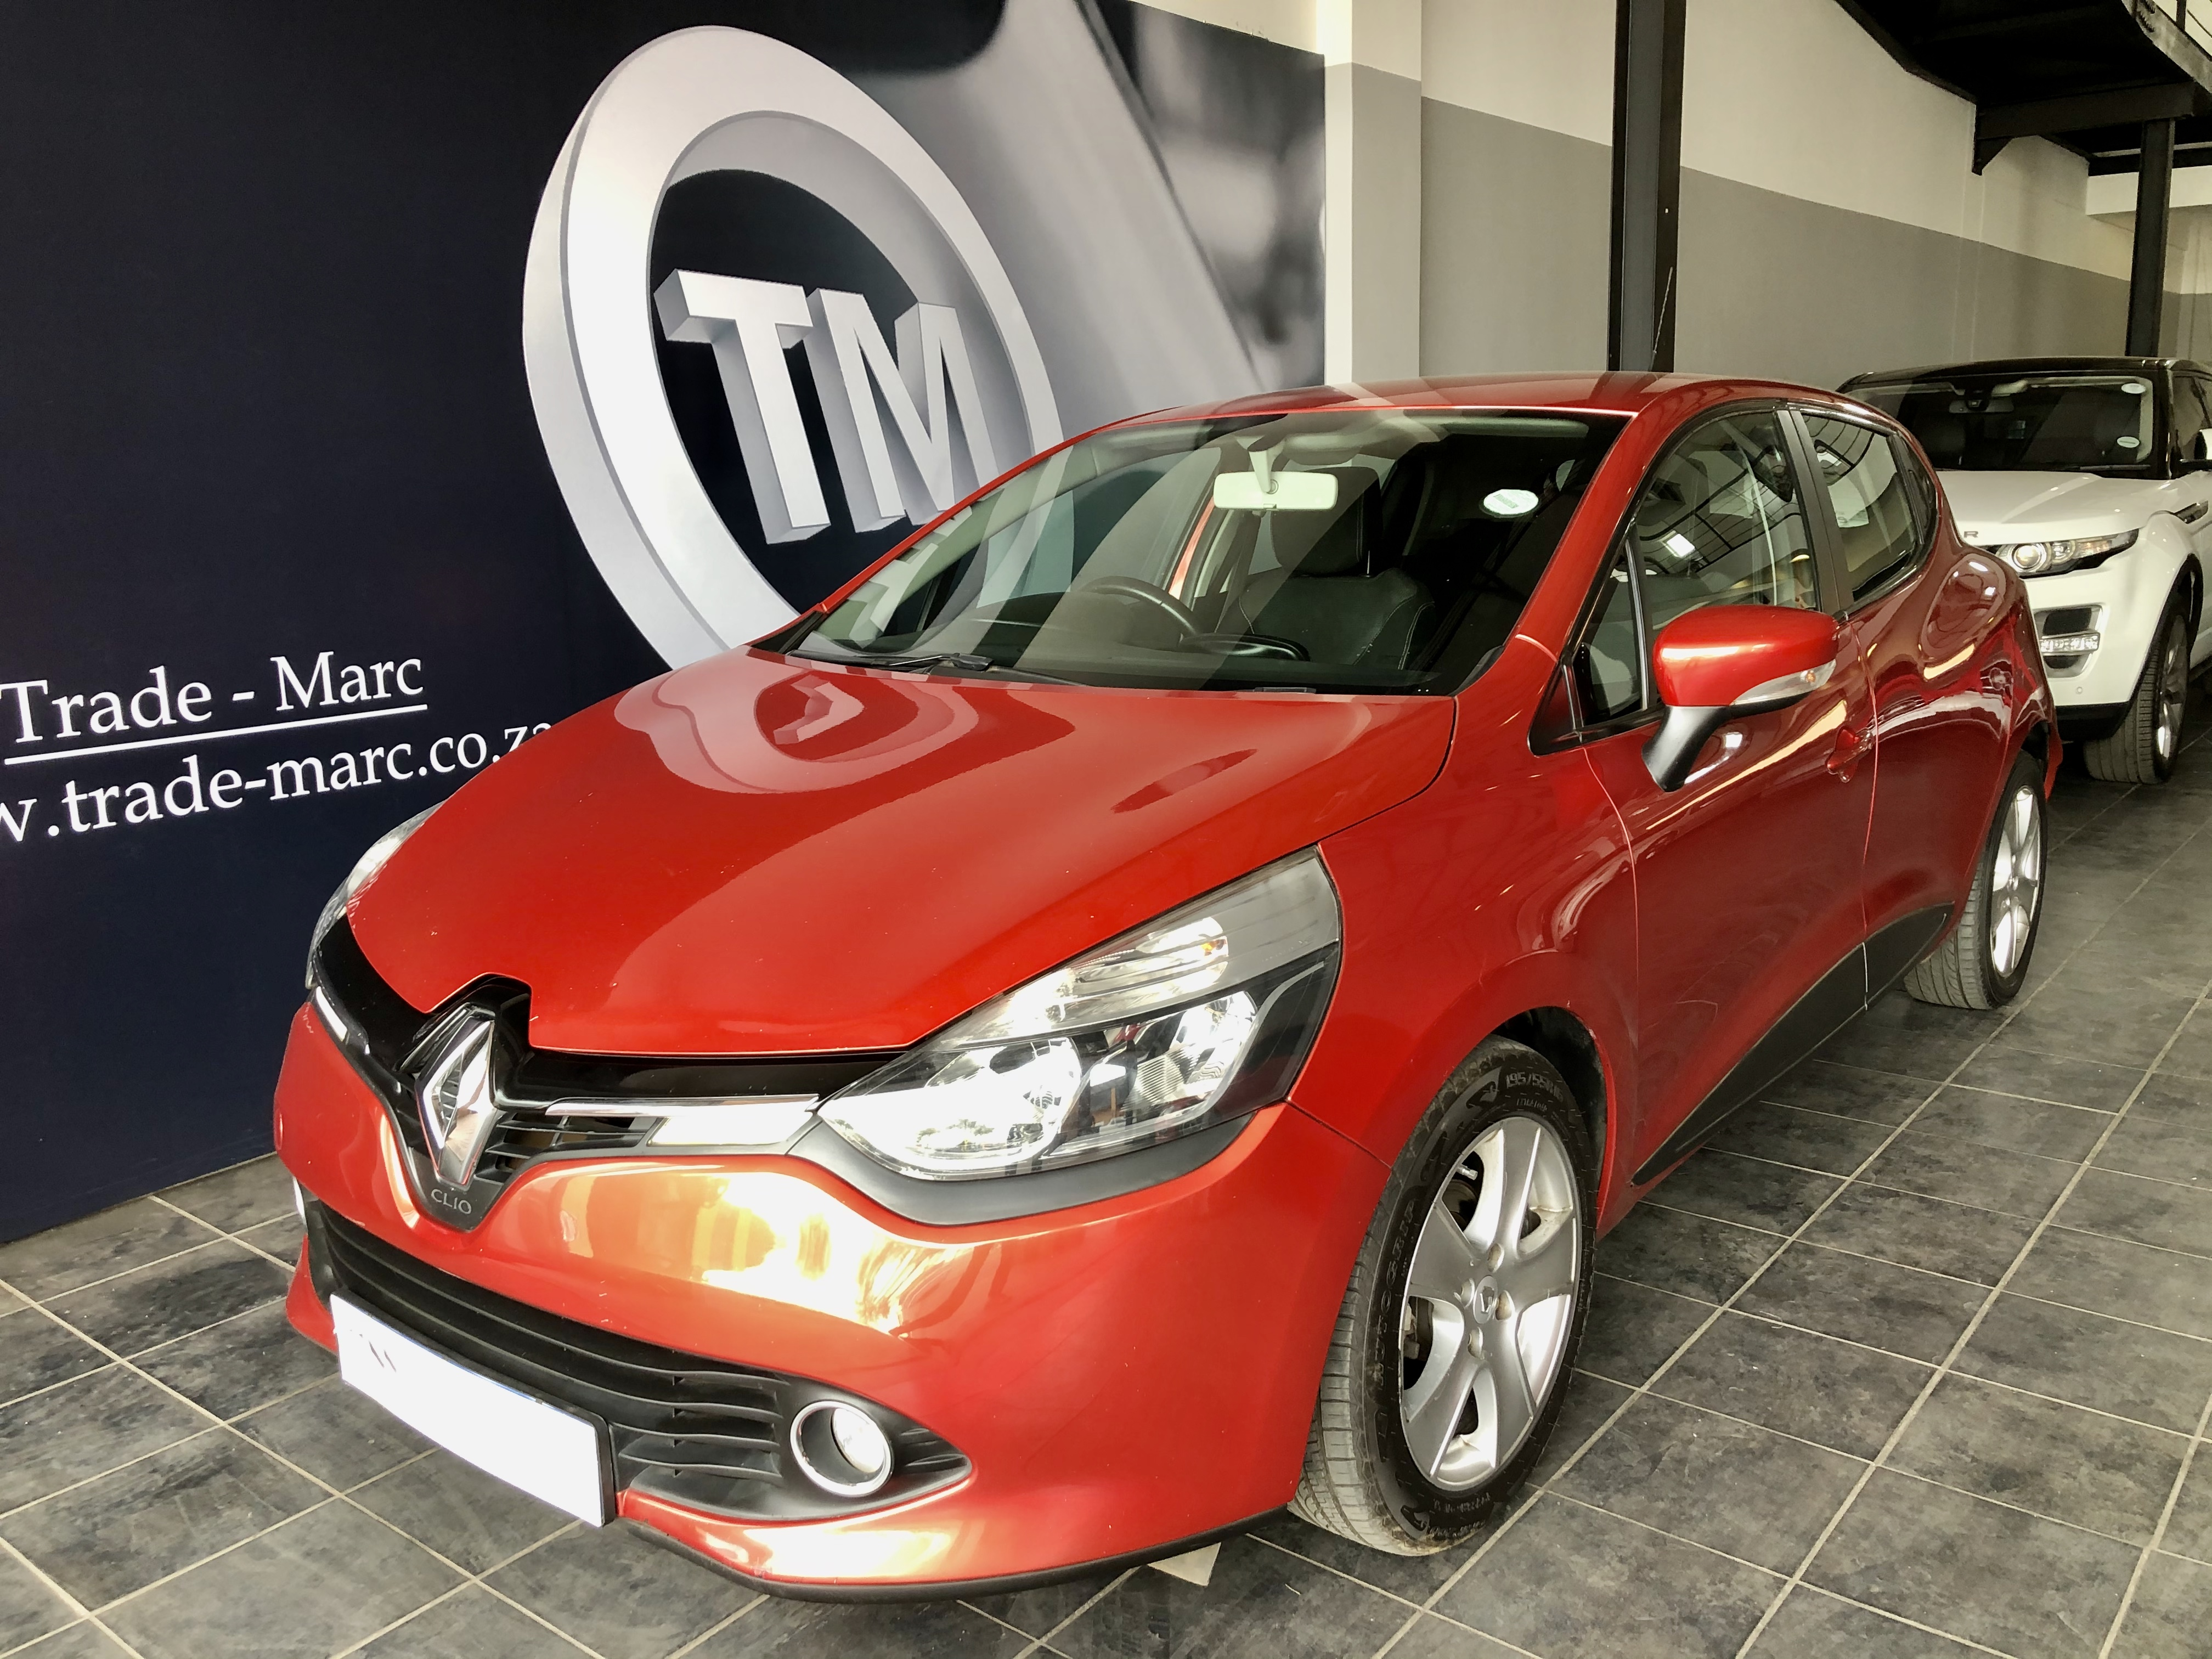 Renault Clio IV 900 T Expression 5Dr